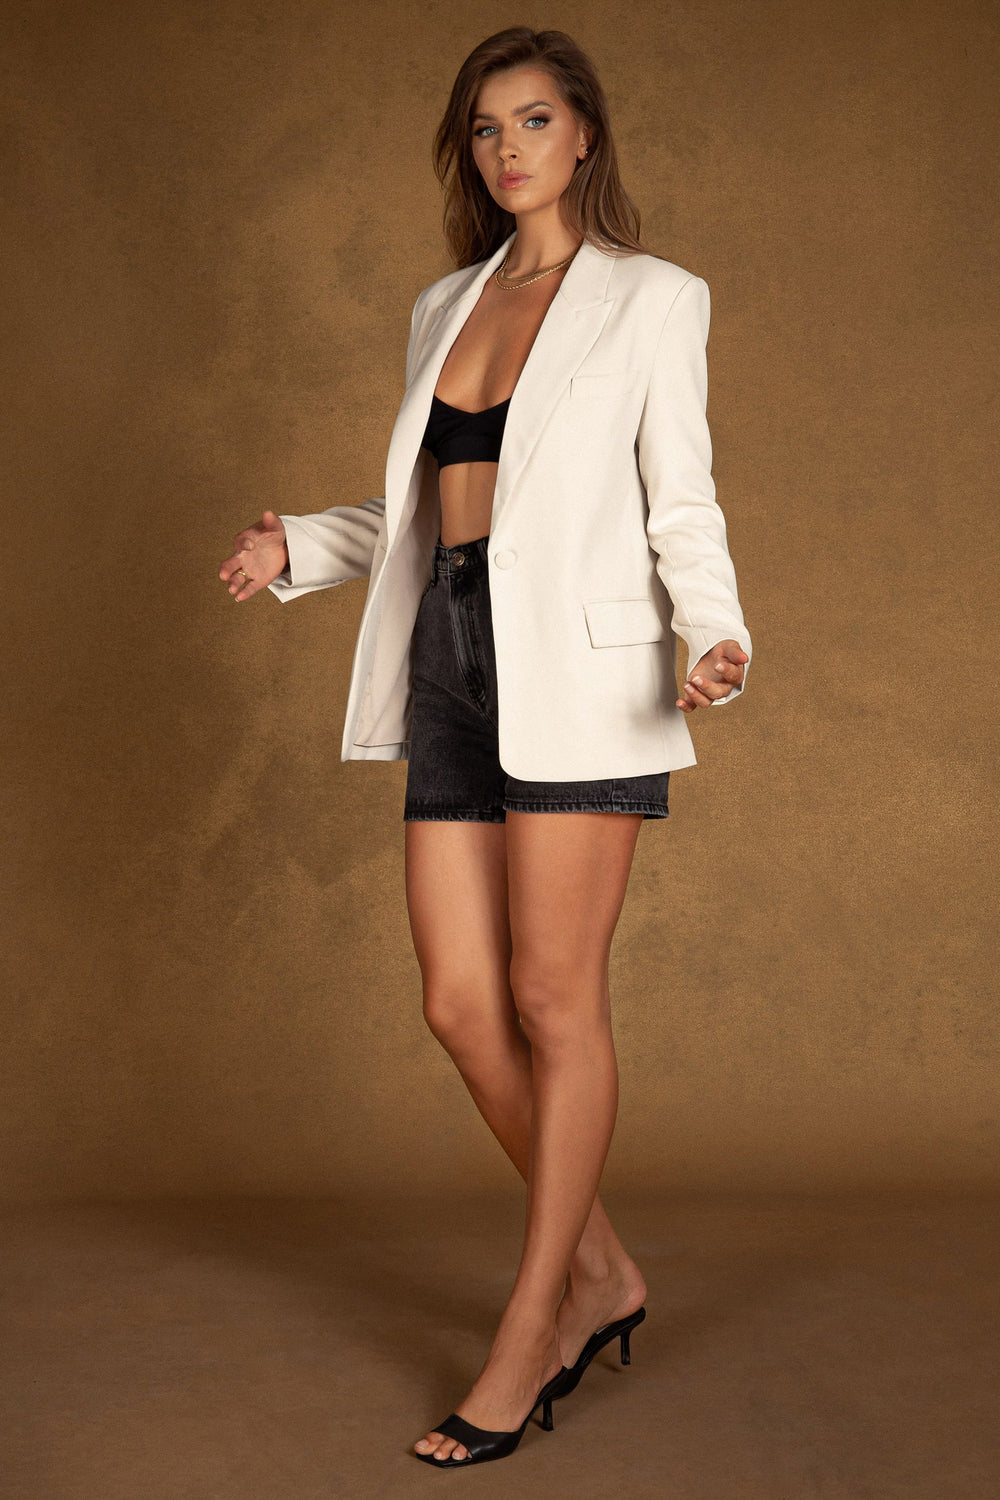 Monica Oversized Blazer - Cream